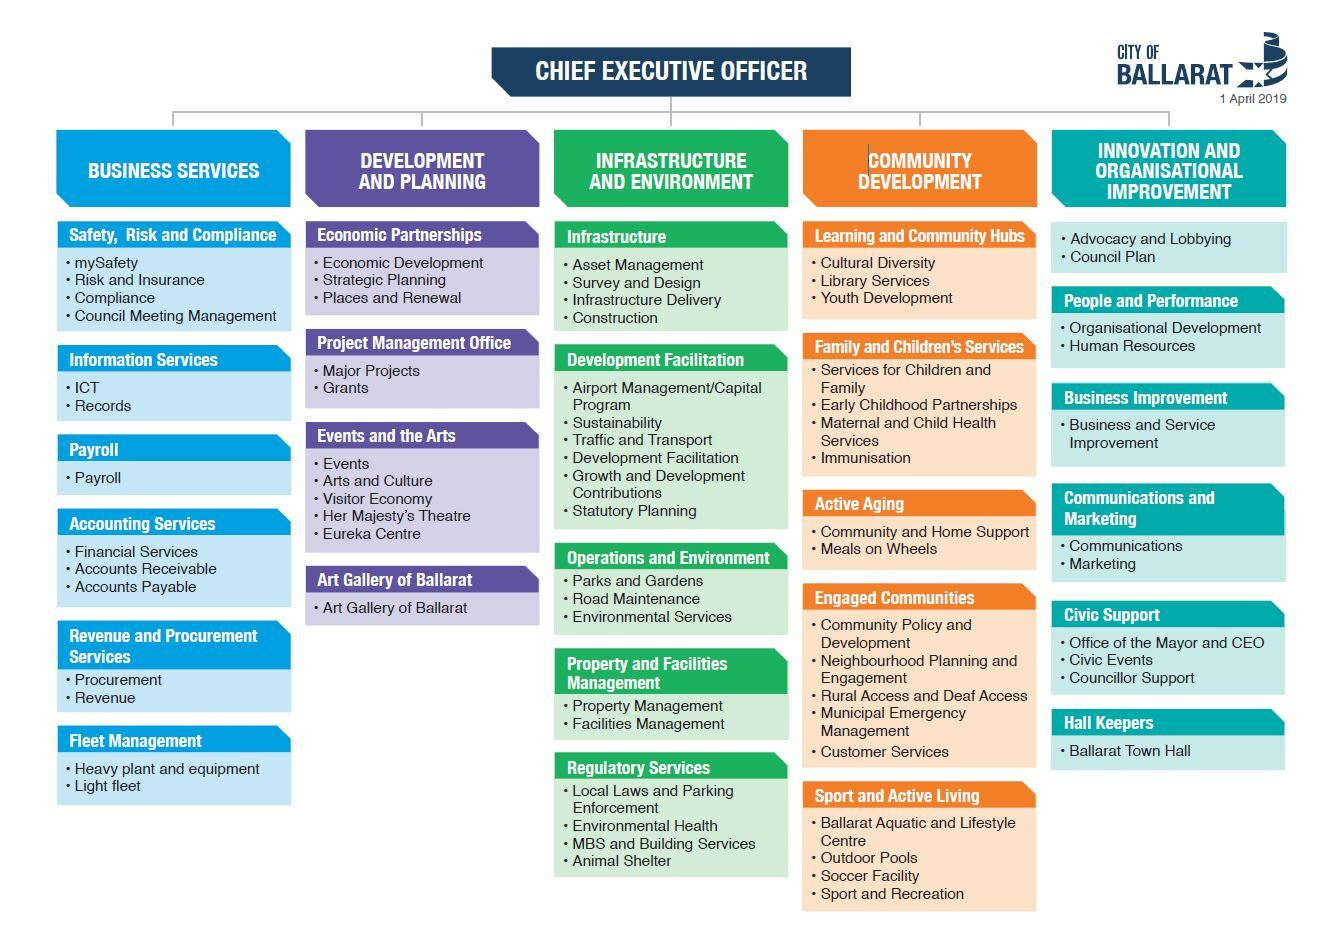 An organisational chart which includes the City of Ballarat logo and has the Chief Executive sitting at the top. Five divisions sit under the Chief Executive Officer. These are Business Services; Development and Planning; Infrastructure and Environment; Community Development; and Innovation and Organisational Improvement.